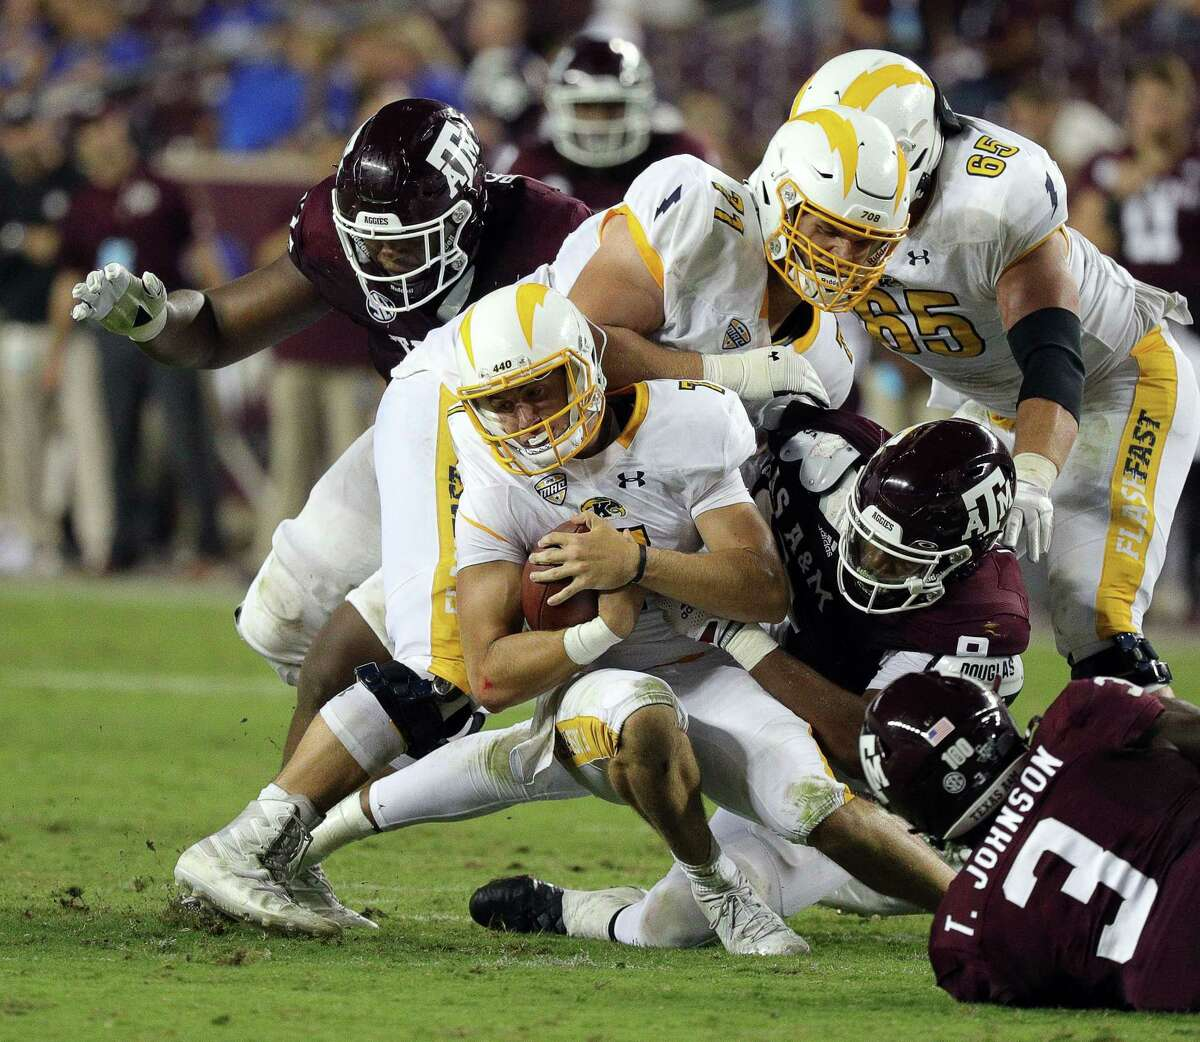 COLLEGE STATION, TEXAS - SEPTEMBER 04: Dustin Crum #7 of the Kent State Golden Flashes is sacked by DeMarvin Leal #8 of the Texas A&M Aggies in the fourth quarter at Kyle Field on September 04, 2021 in College Station, Texas. (Photo by Bob Levey/Getty Images)